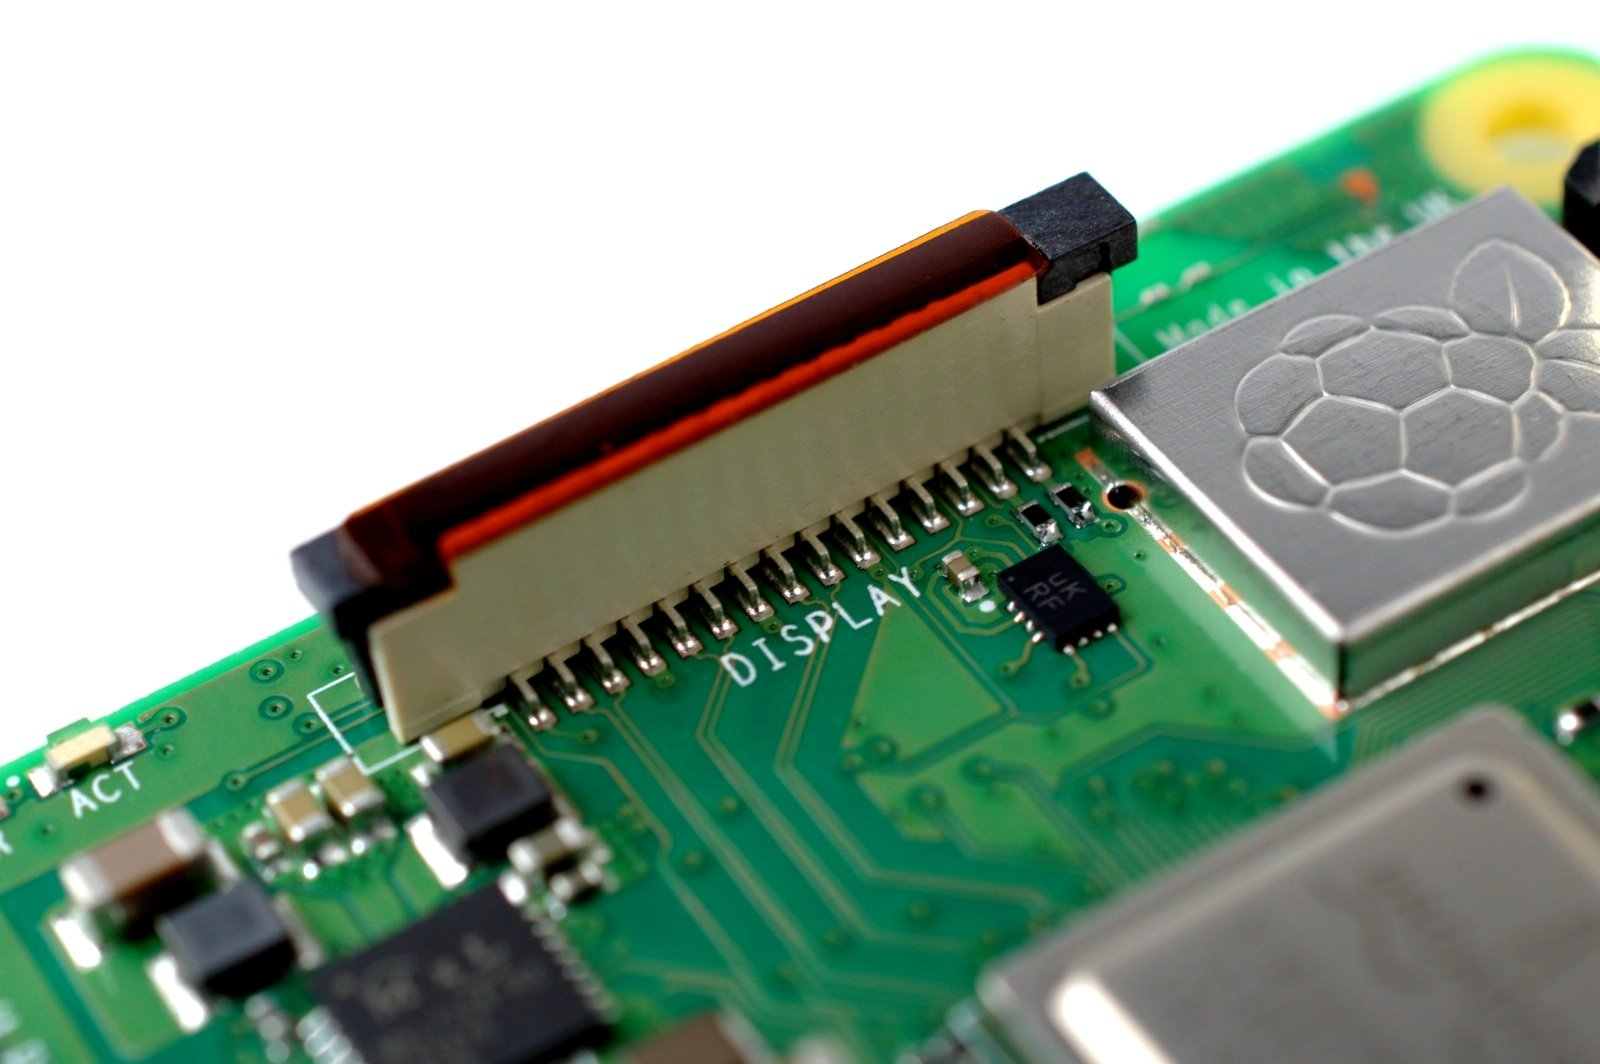 Raspberry Pi 3 Model A+ - Robu in | Indian Online Store | RC Hobby |  Robotics